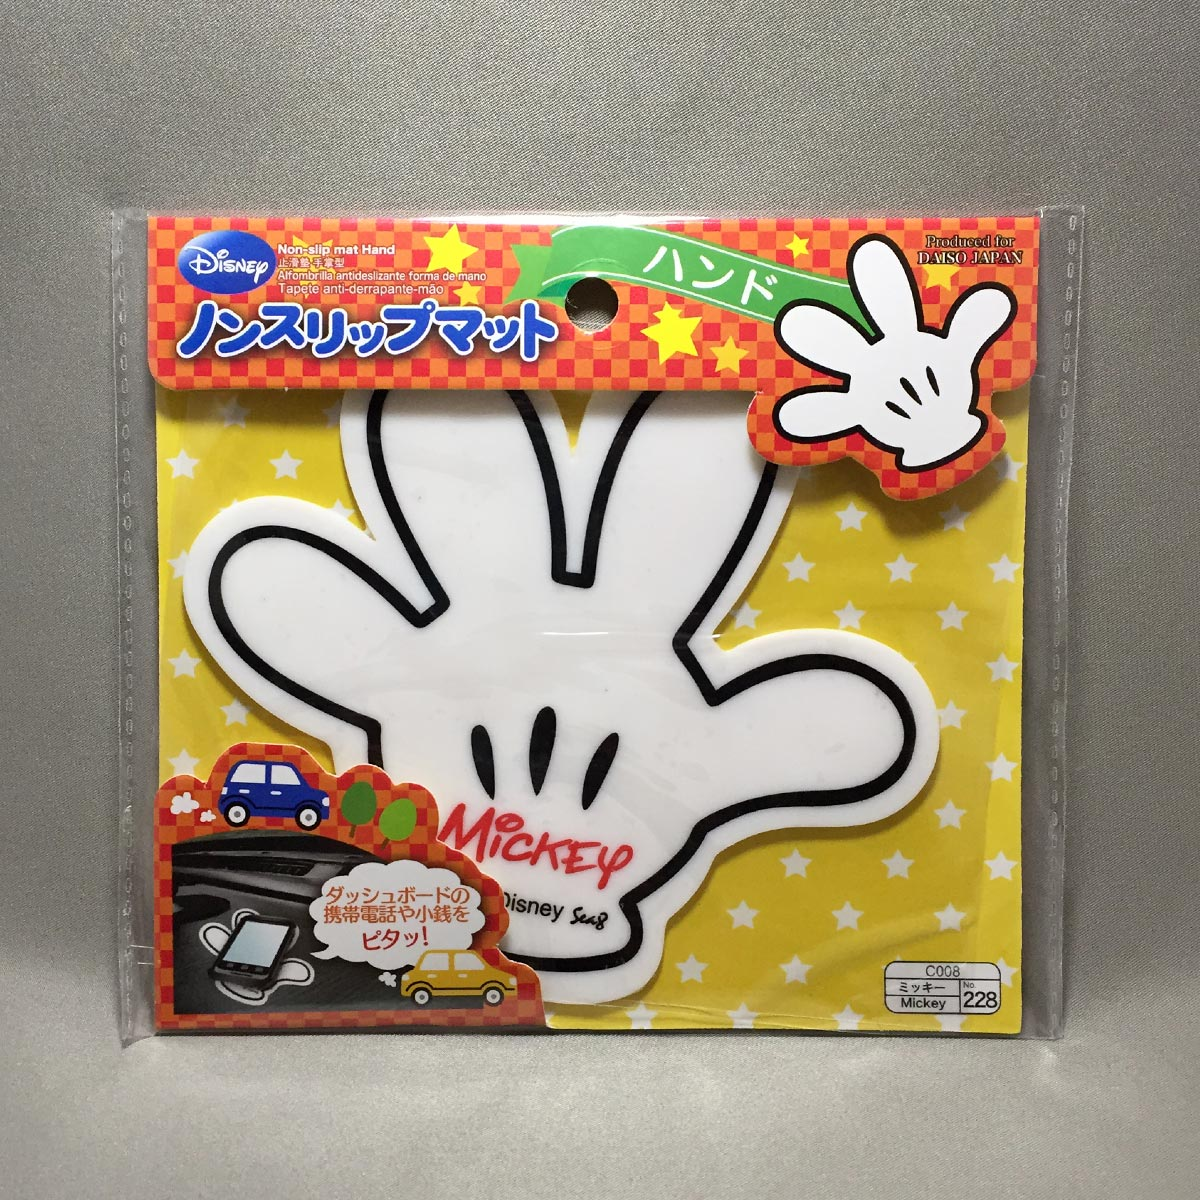 Mickey non-slip Mat Hand - Front Packaging